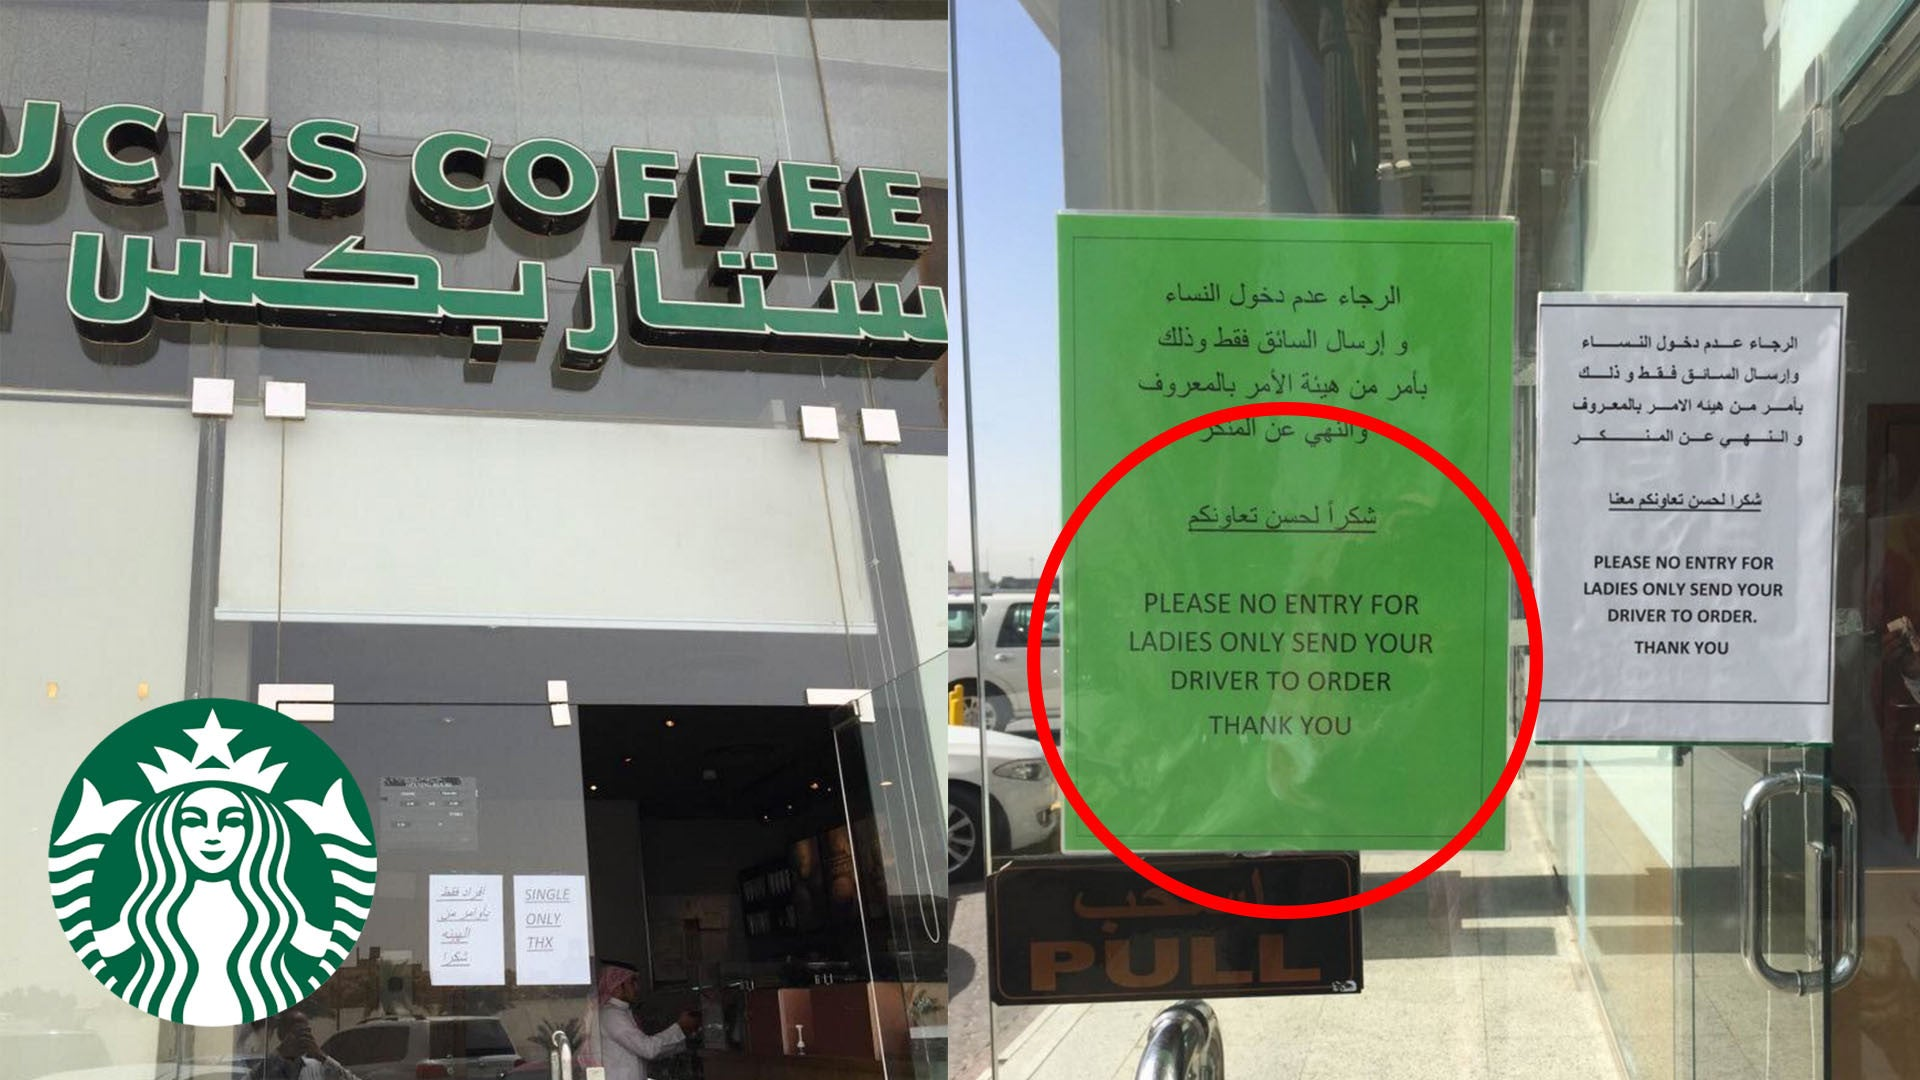 UPDATE: Starbucks Banned Women from their Coffee Shop in Saudi Arabia